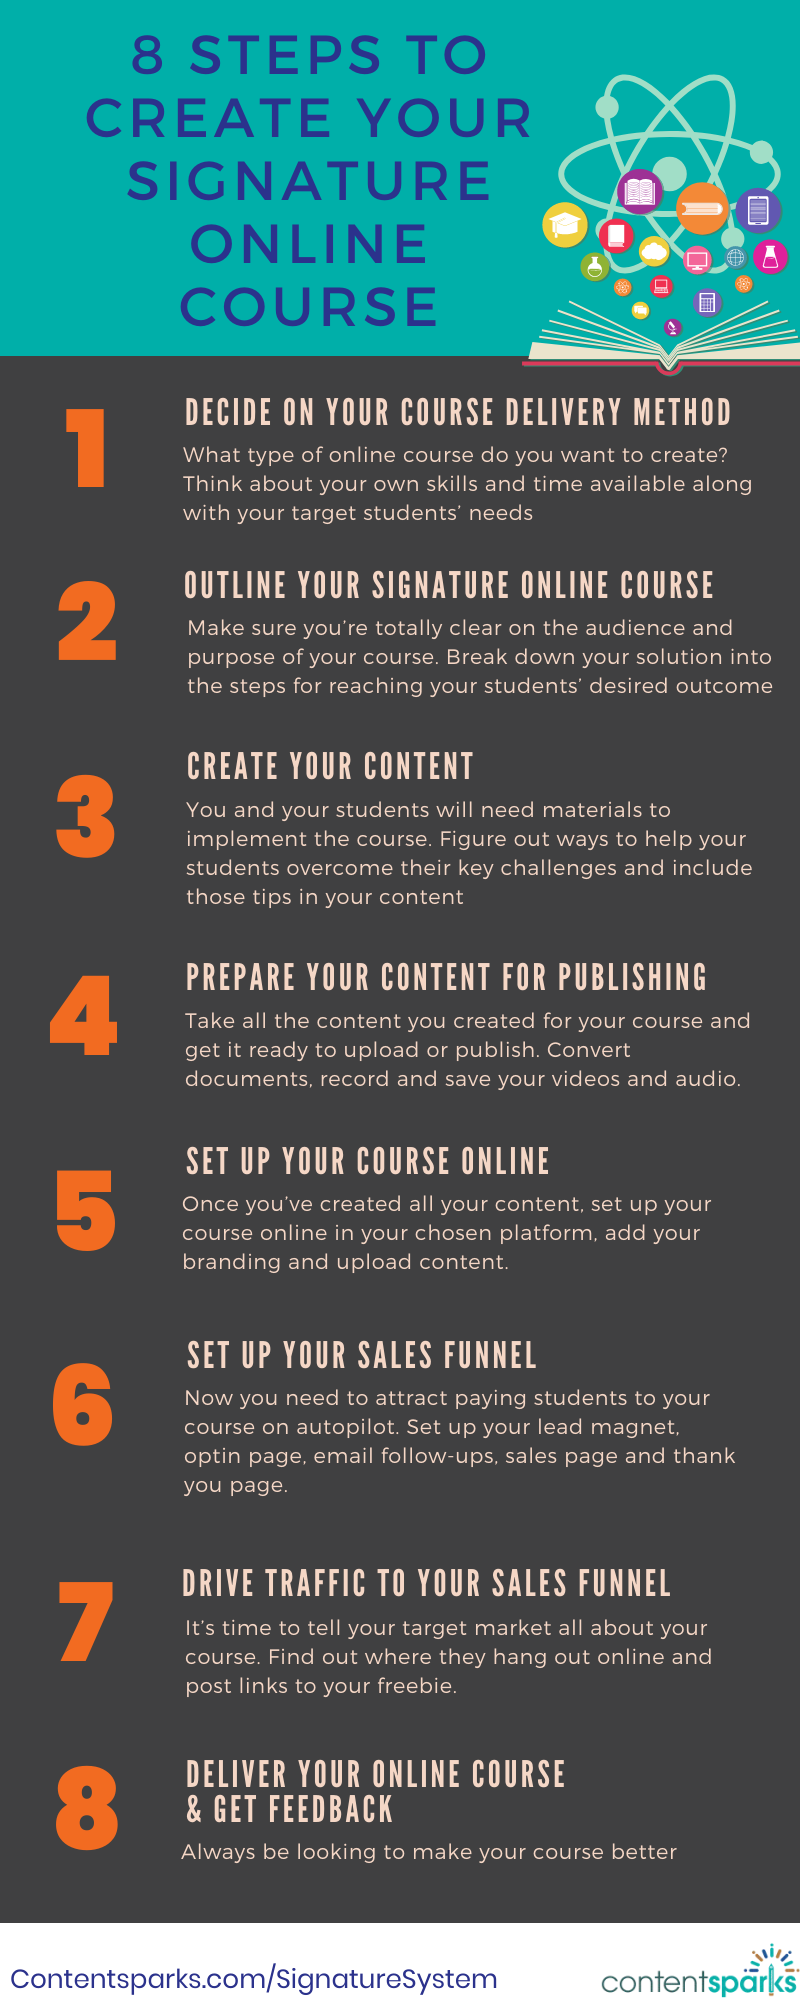 How to Create Your Signature Online Course